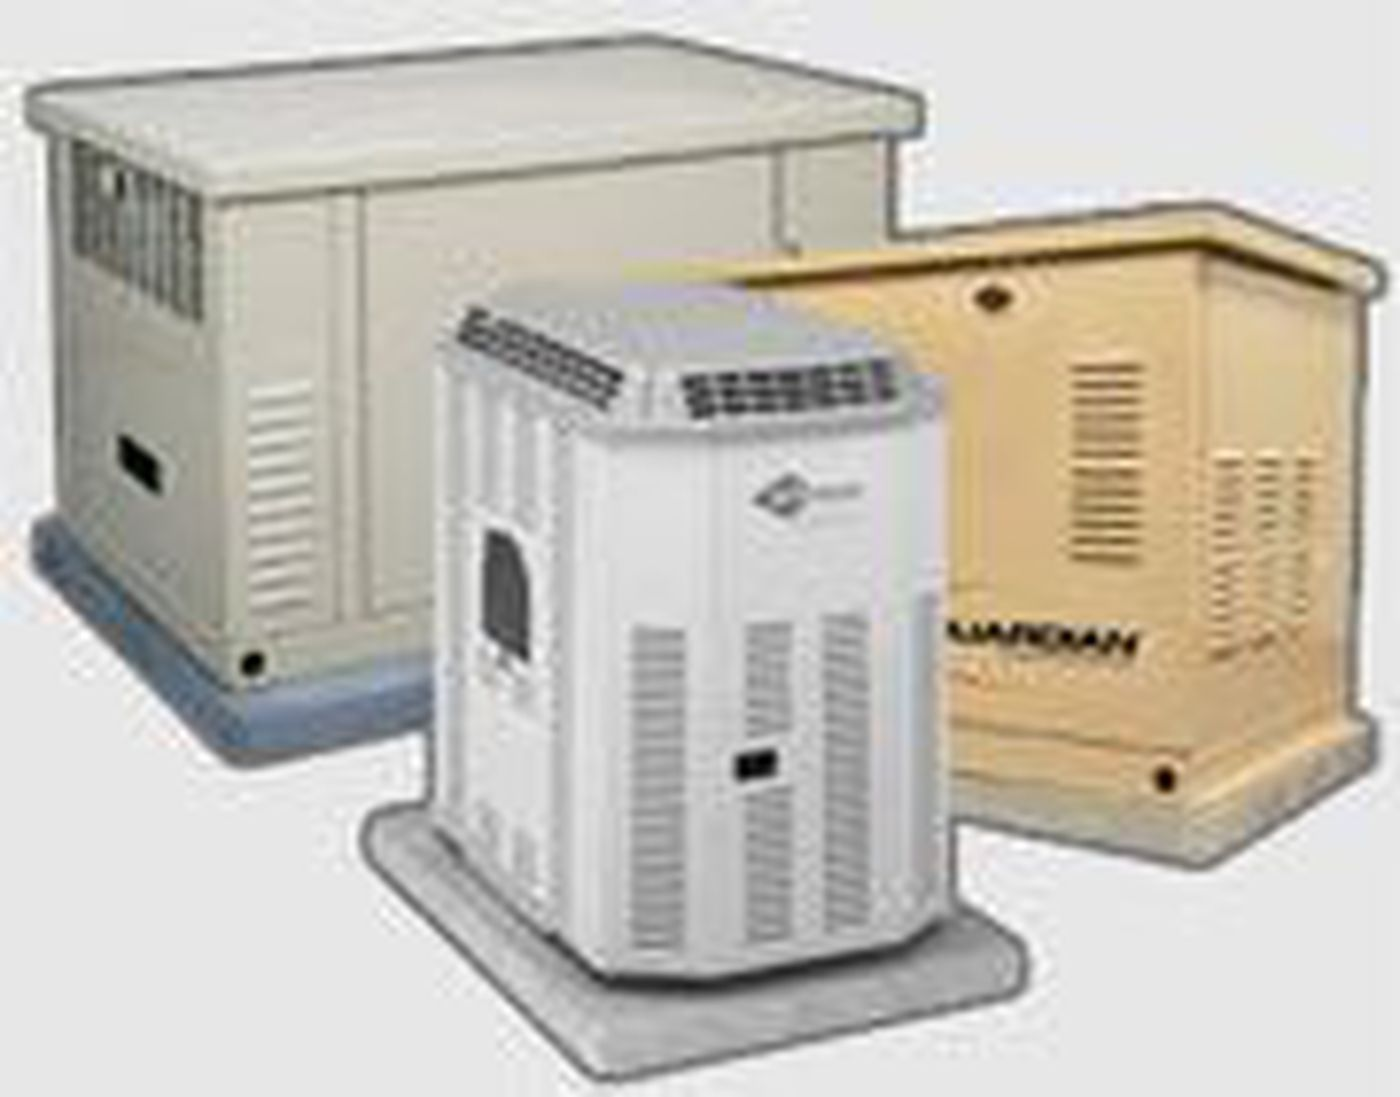 Generator Models Emergency Generators And Backup Power Installation At Solutionstm We Offer More Than Just Standby A Complete Service Package That Includes Onsite Survey